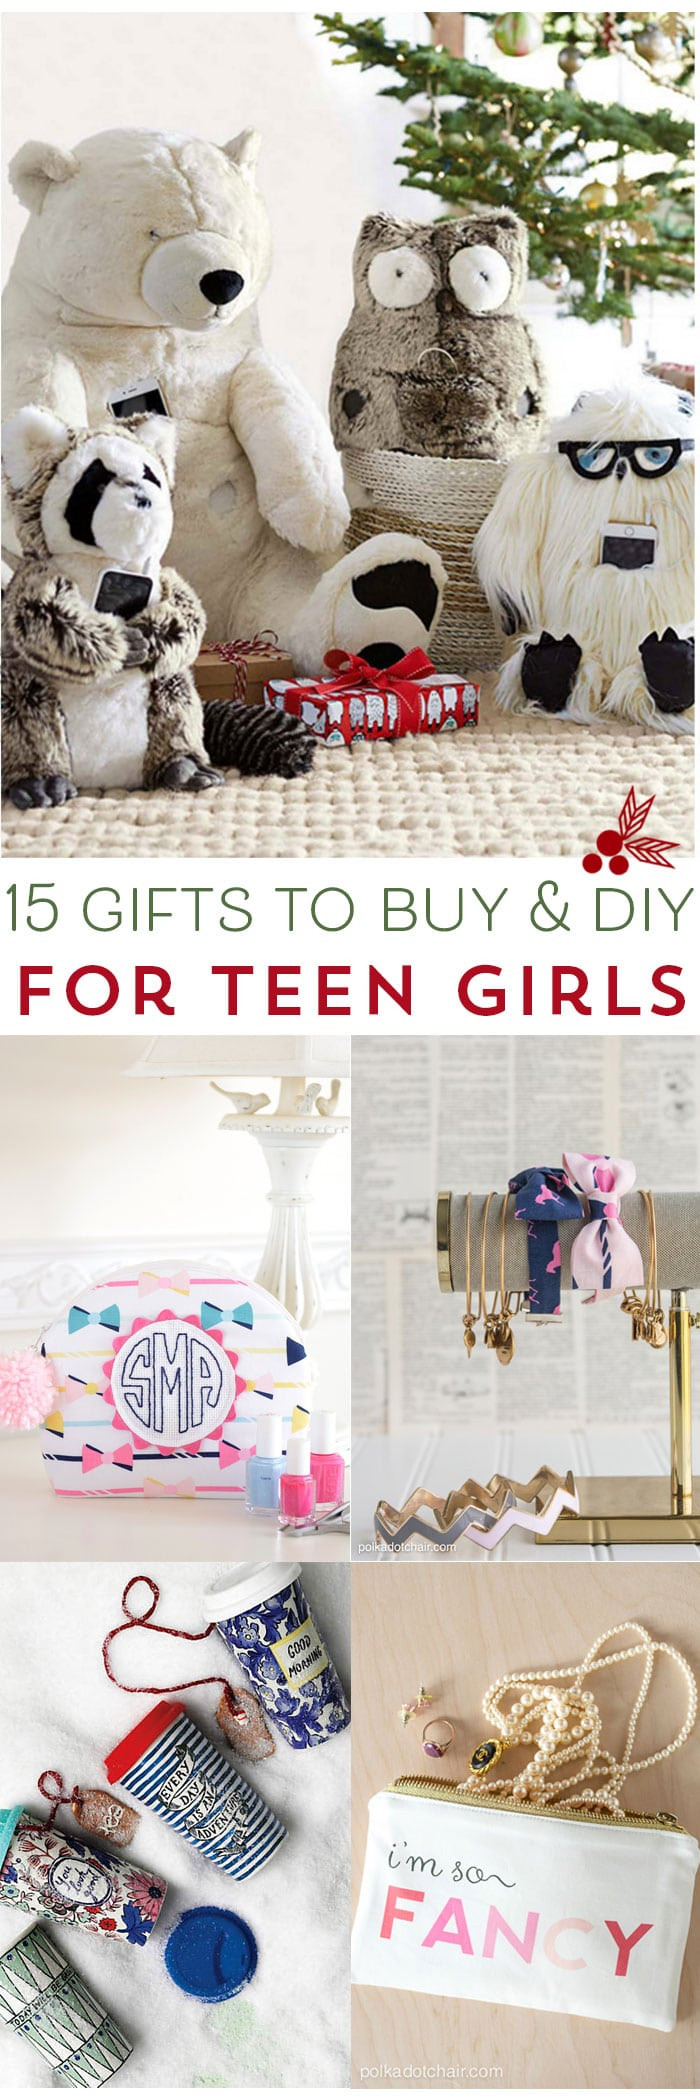 Best ideas about DIY Christmas Gifts For Teenagers . Save or Pin 15 Gifts for Teen Girls to DIY and Buy The Polka Dot Chair Now.